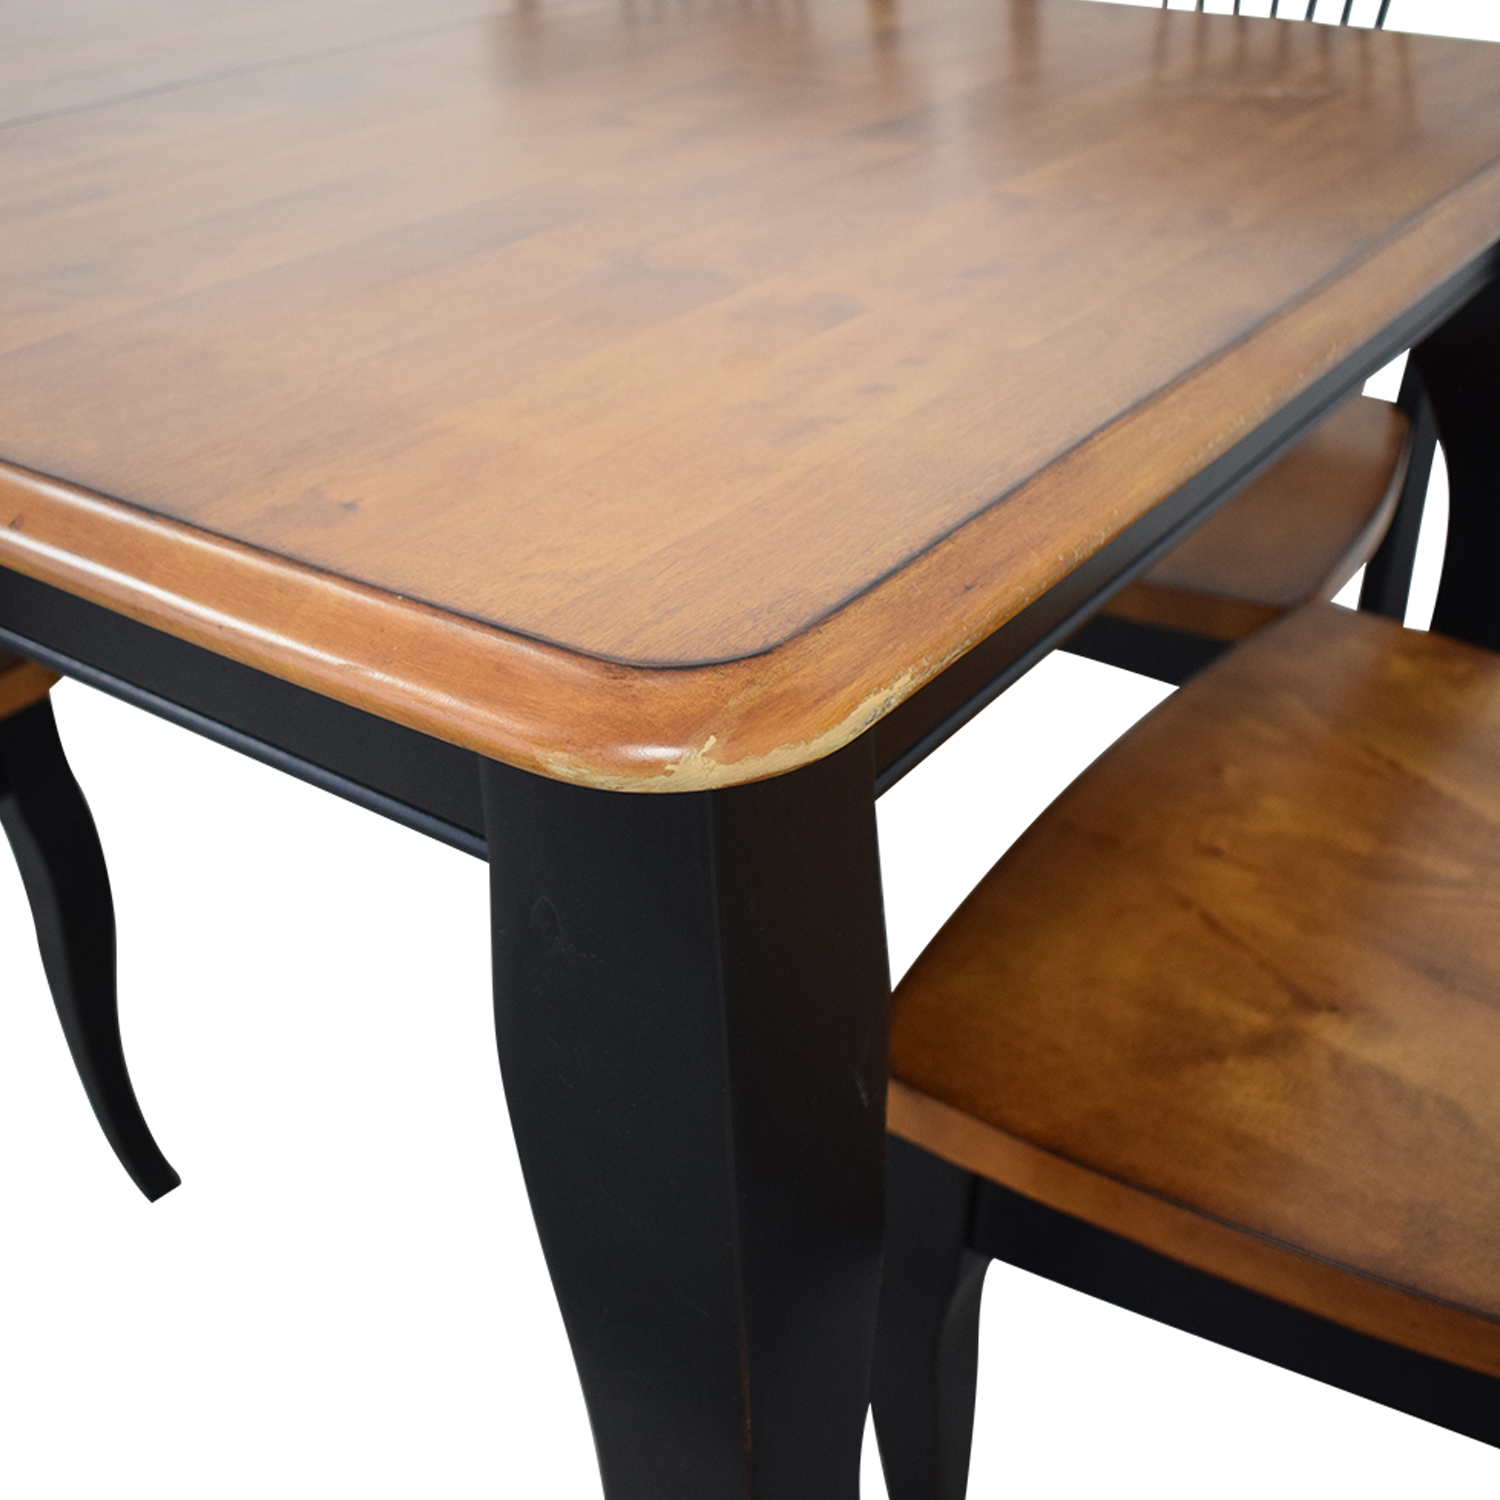 Raymour & Flanigan Raymour & Flanigan Dining Table and Chairs Tables